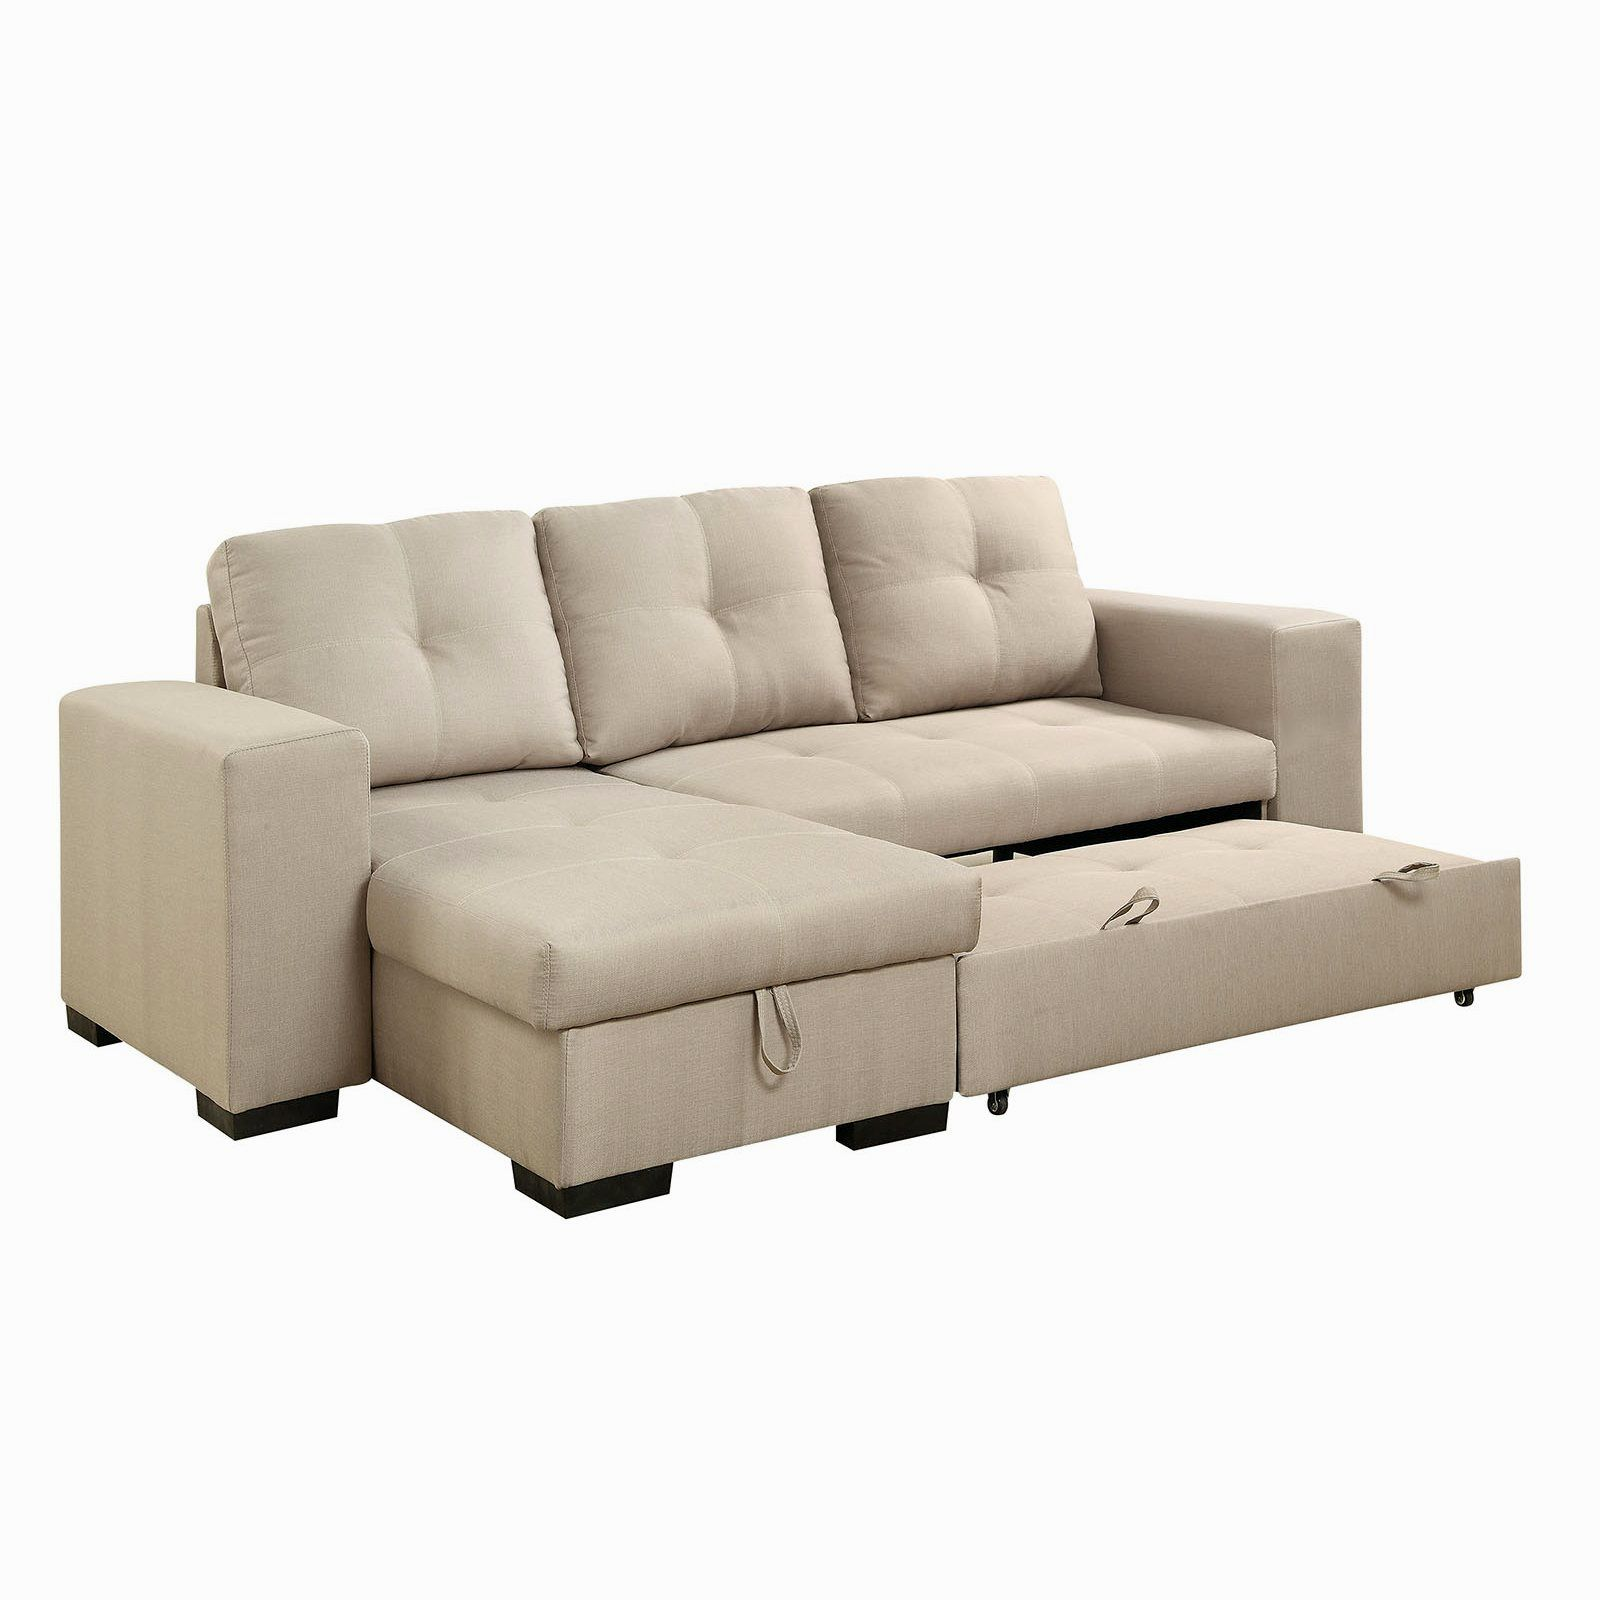 lovely sears sleeper sofa photo-Sensational Sears Sleeper sofa Photograph